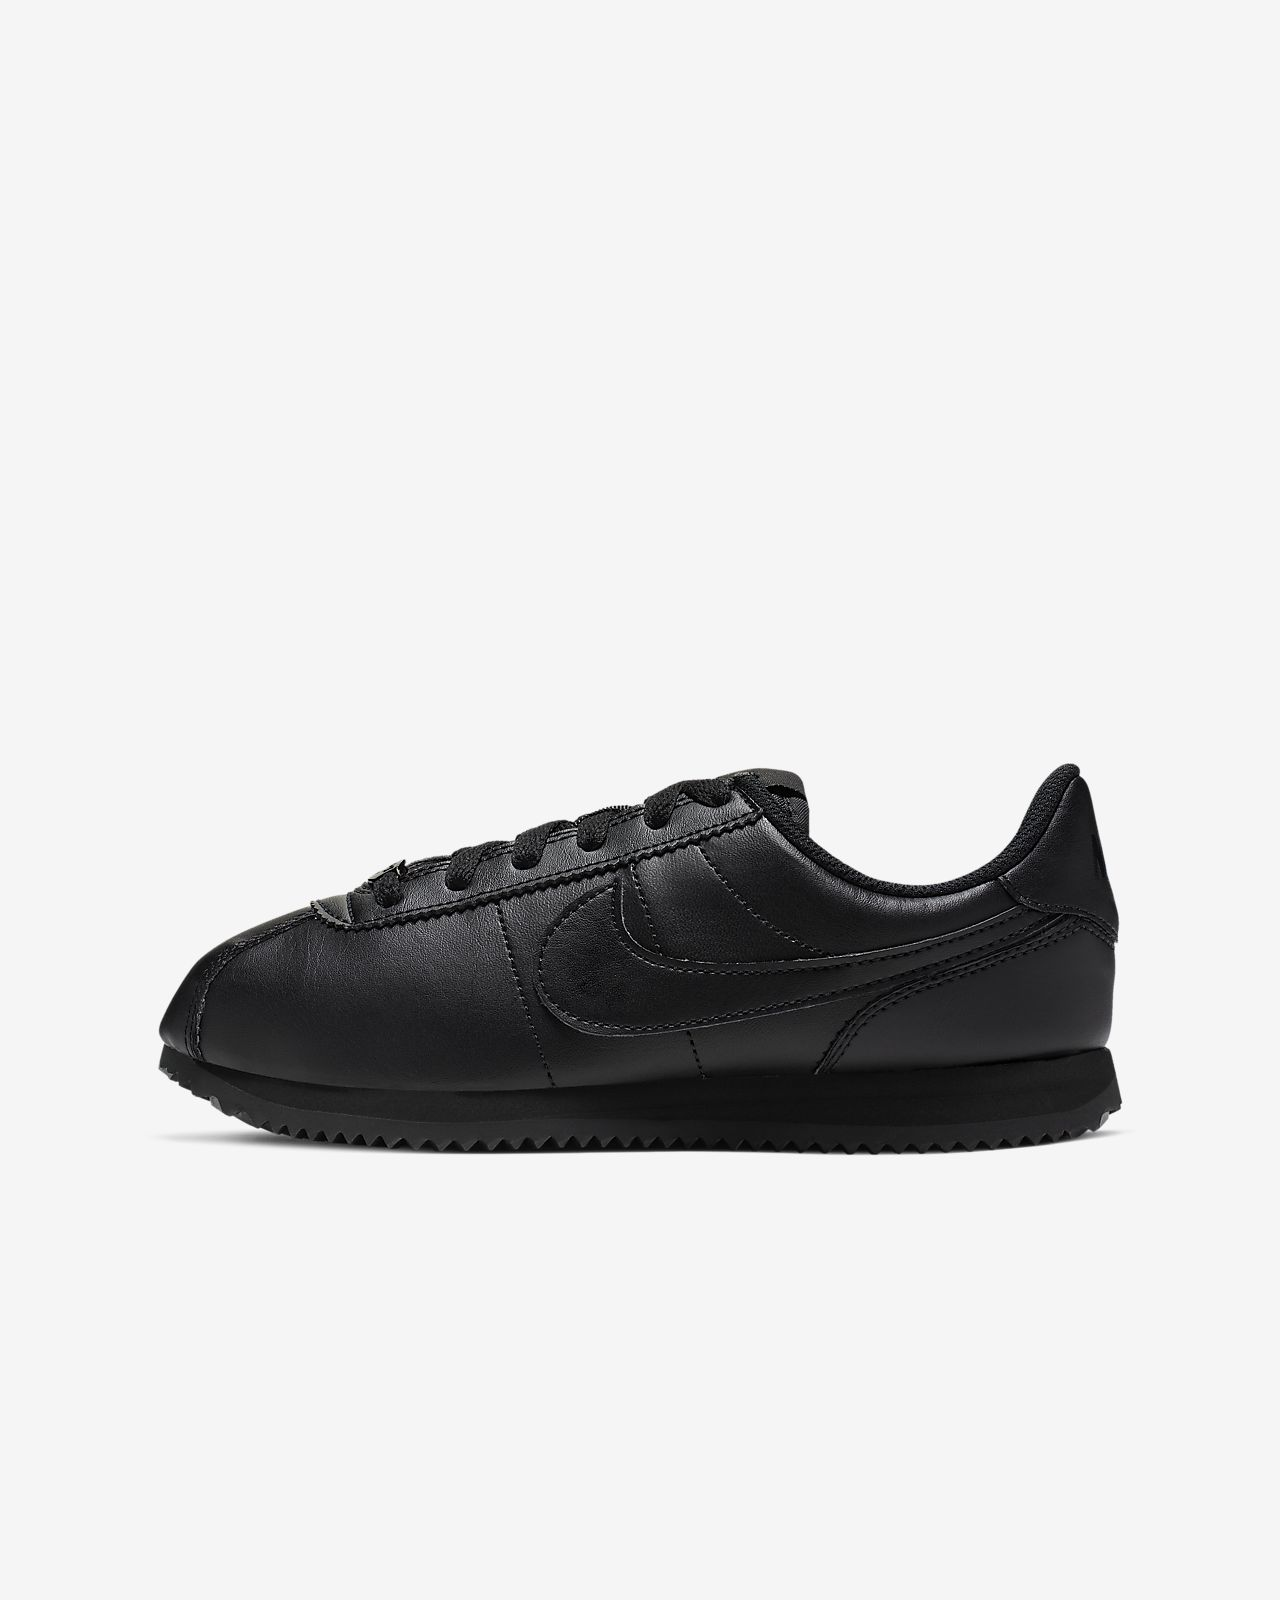 Lifestyle Shoes Nike Cheap Online | LunarCharge Essential